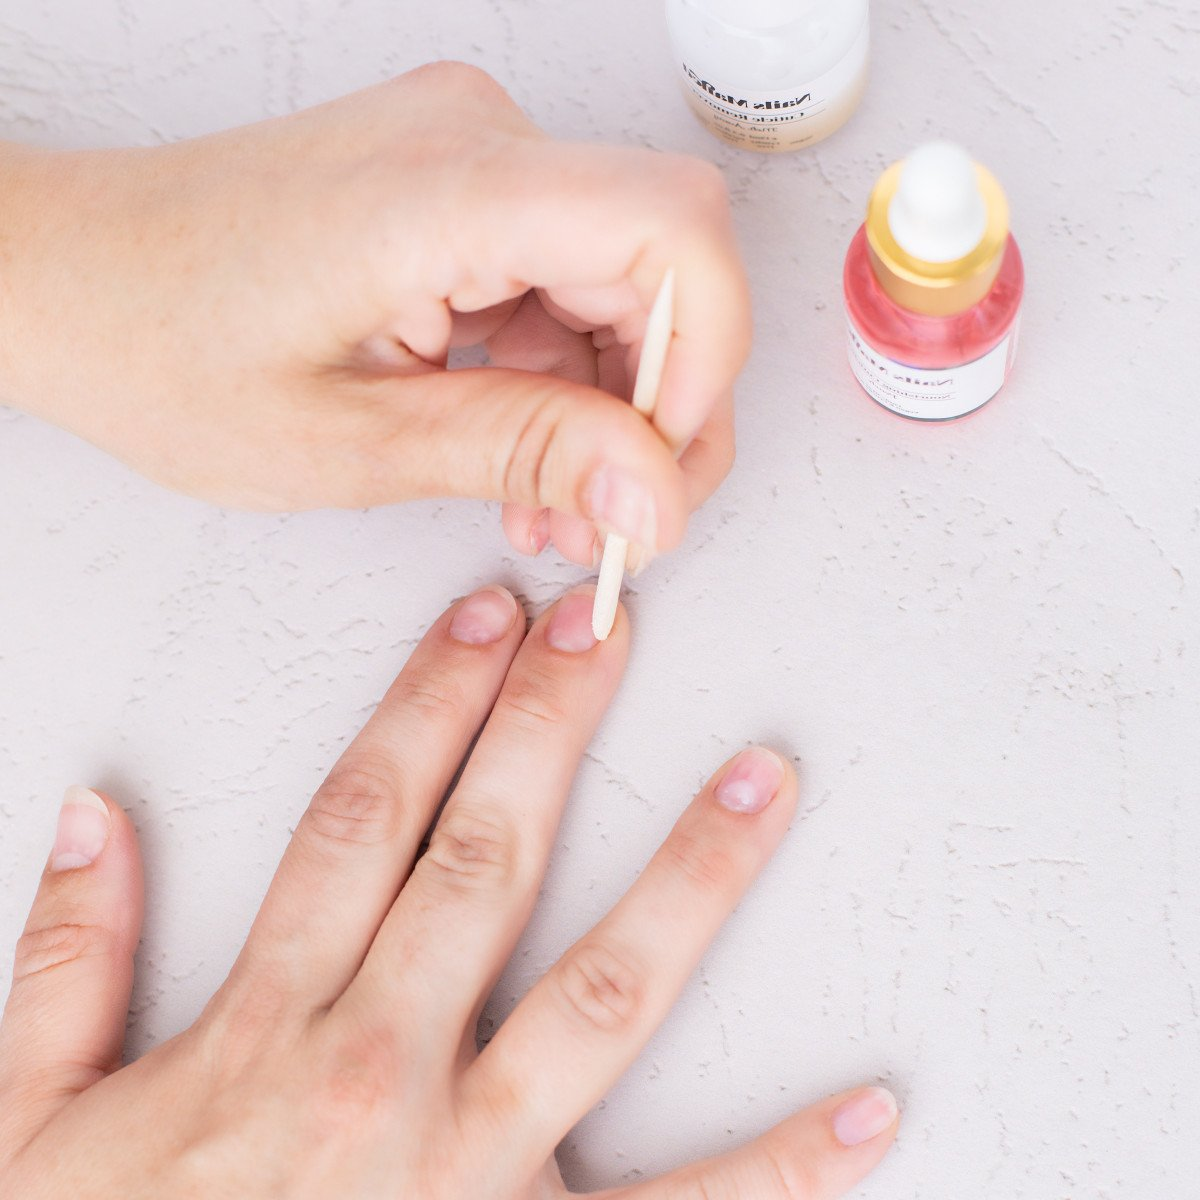 Caring for Your Cuticles & Cuticle Health